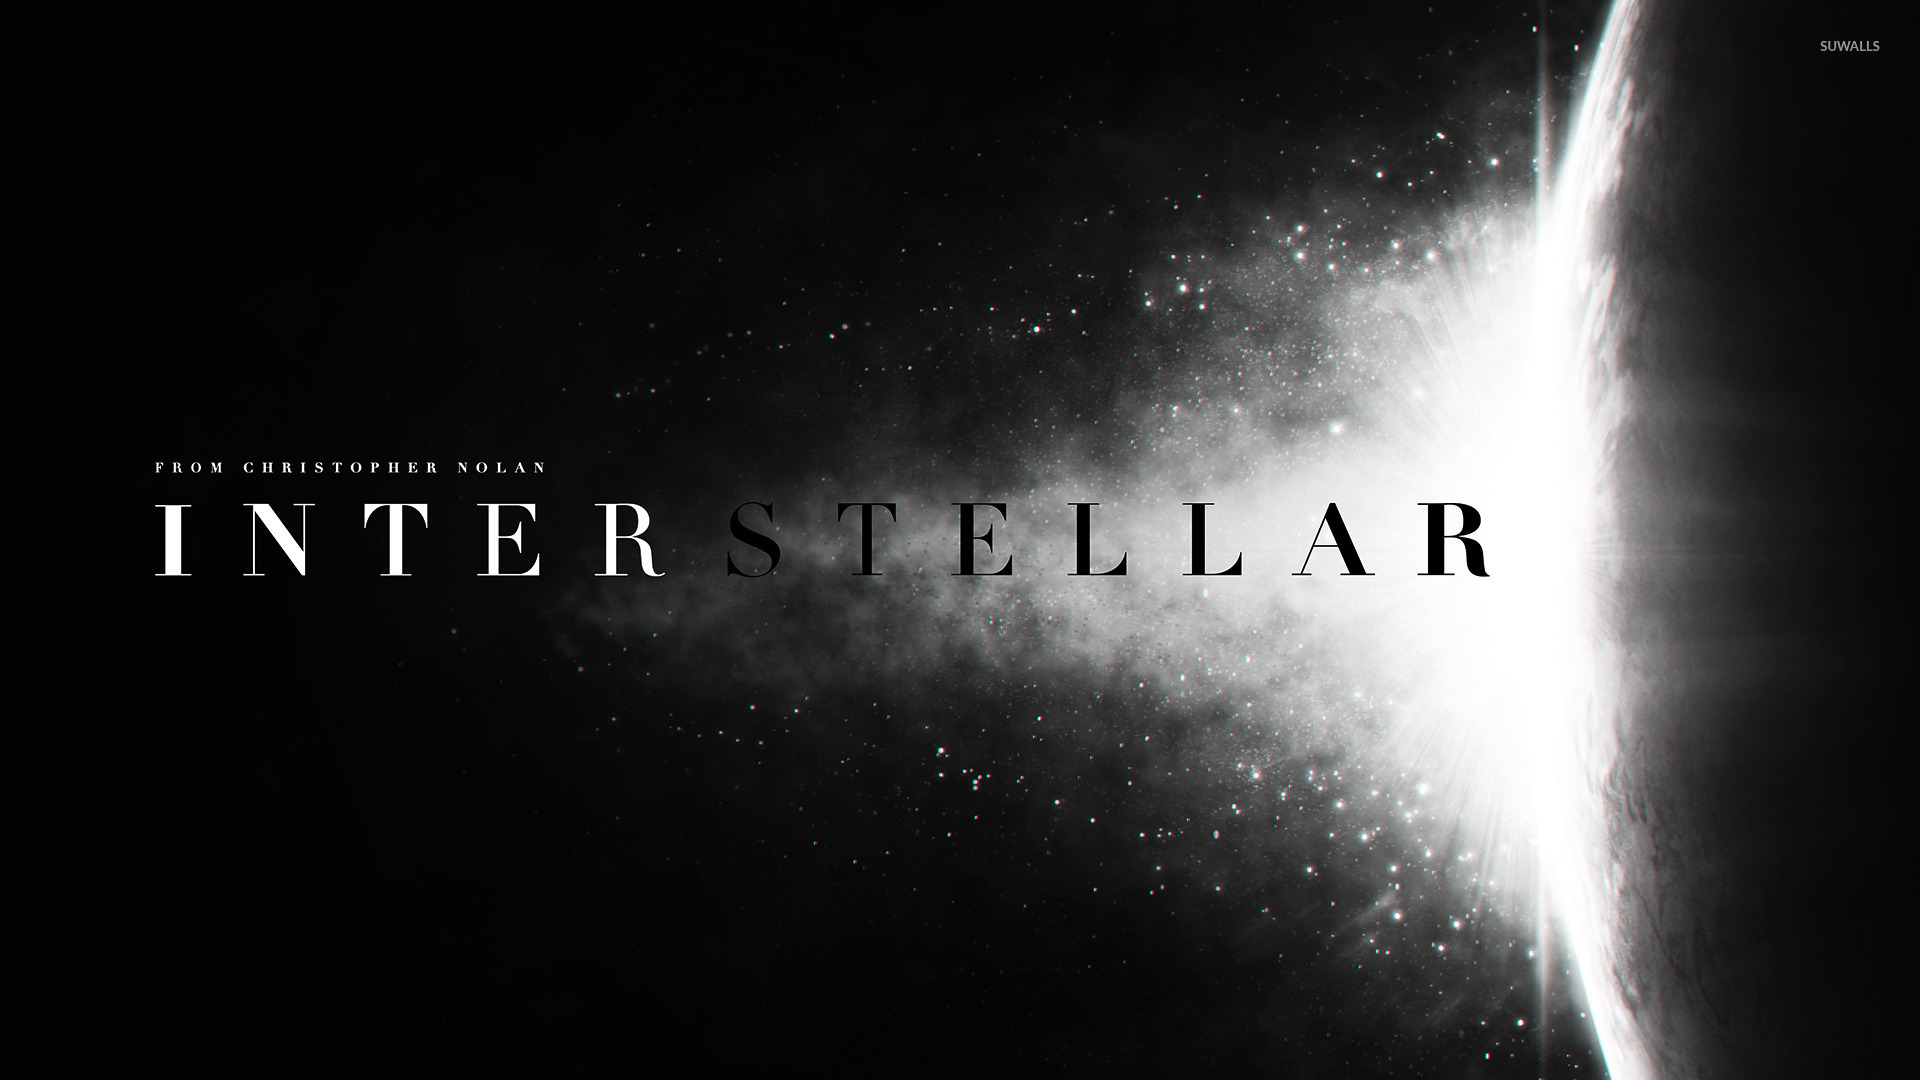 Interstellar Wallpaper Movie Wallpapers 31974